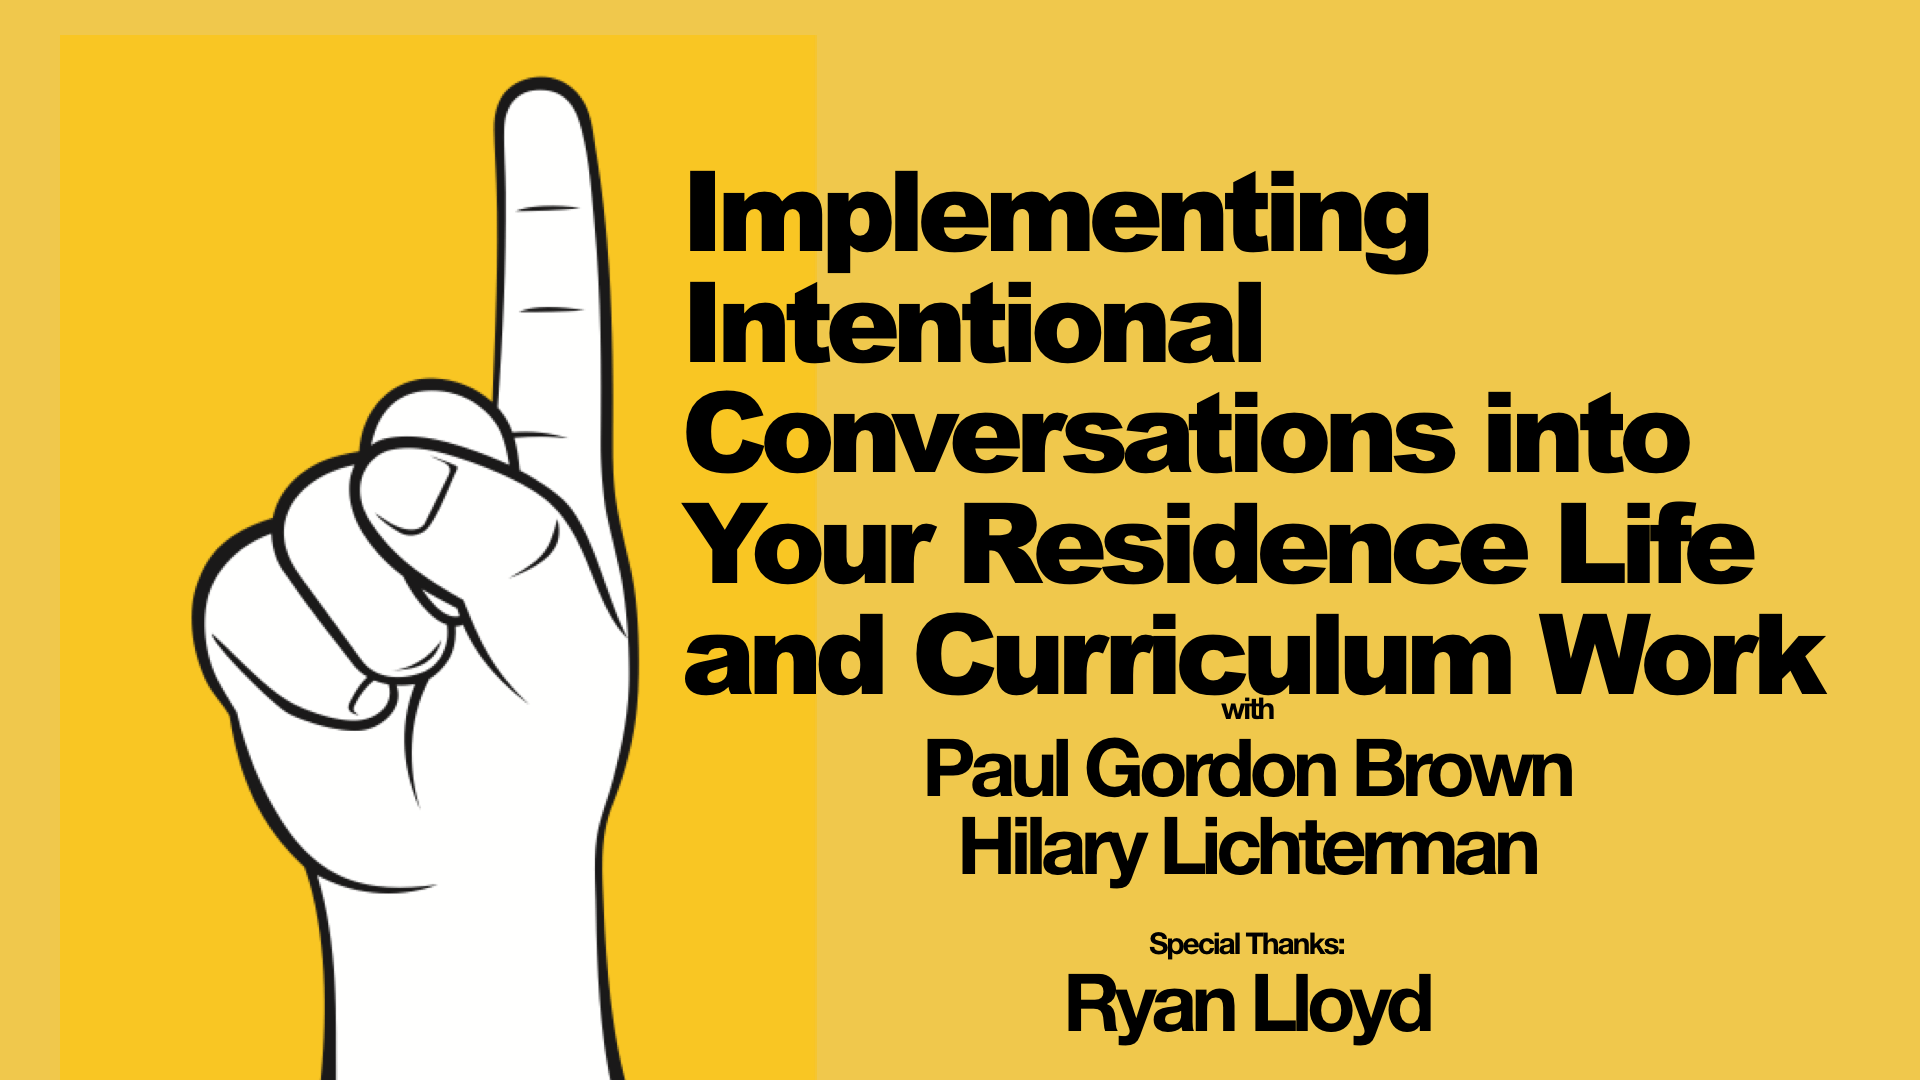 Presentation: Implementing Intentional Conversations into Your Residence Life and Curriculum Work